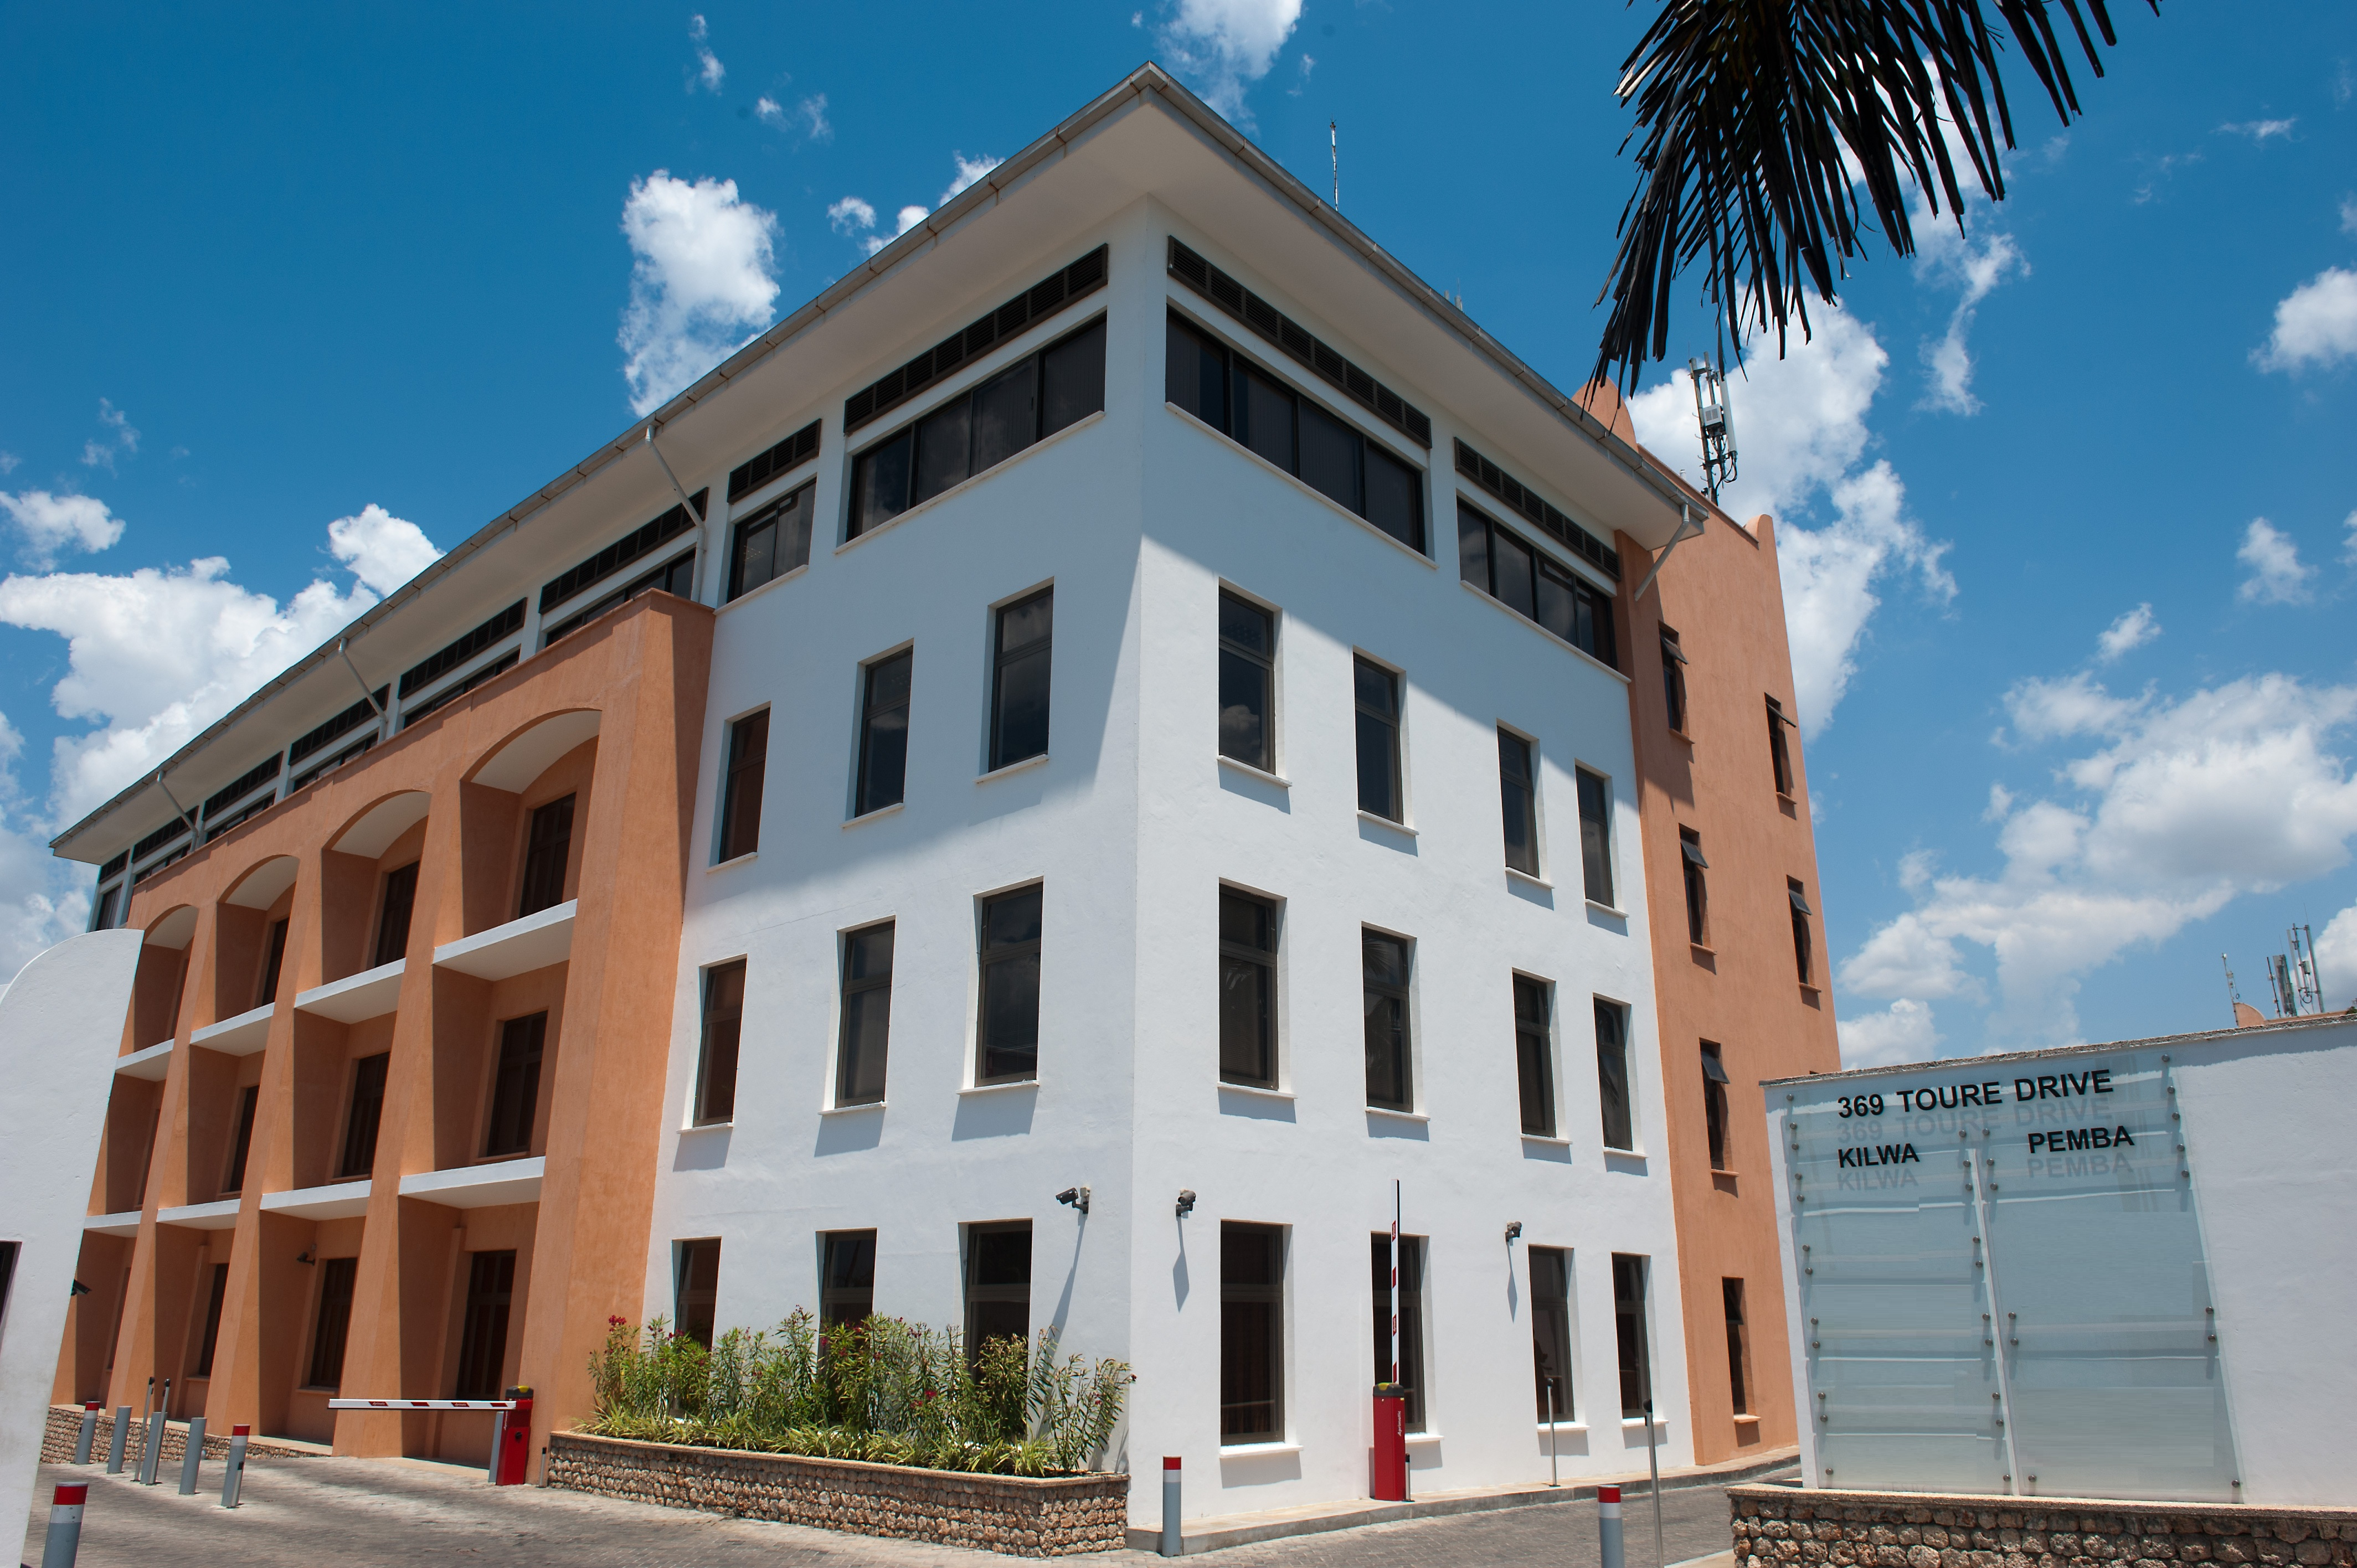 Office Space in Kilwa House 369 Toure Drive Oysterbay